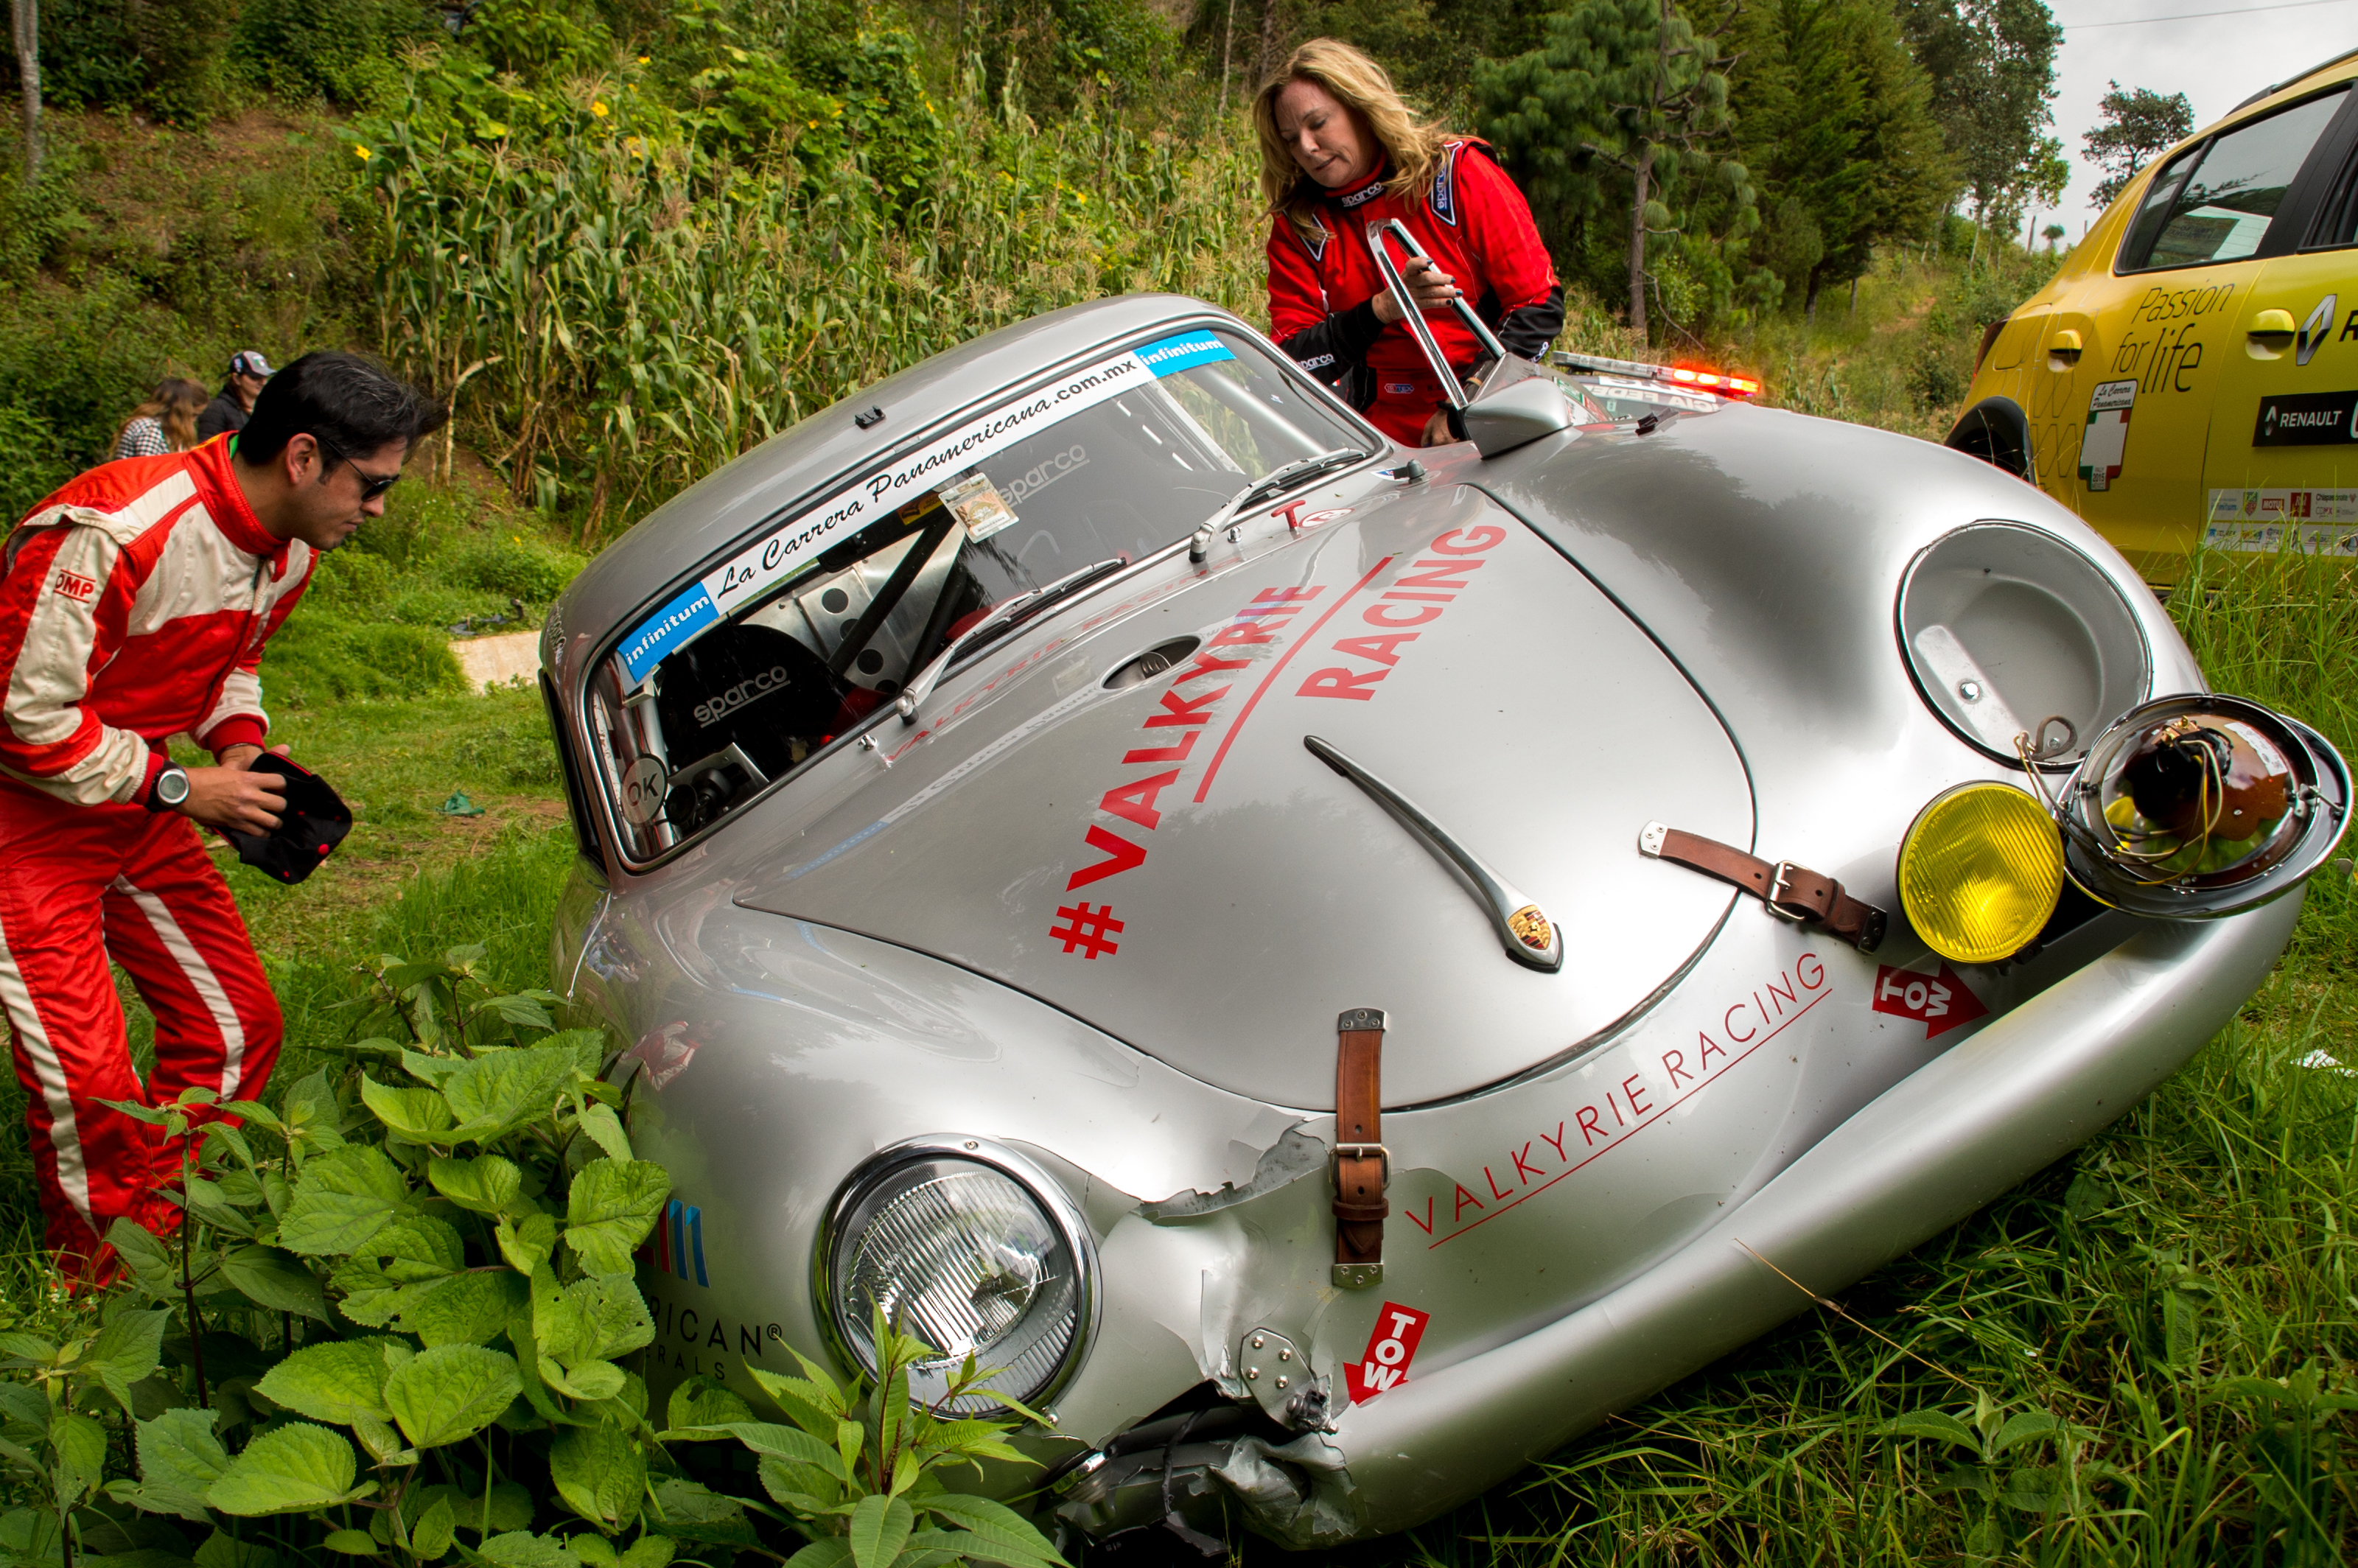 Renée Brinkerhoff and navigator Roberto Mendoza survey damage to the 356 after a crash in La Carrera Panamericana 2015.